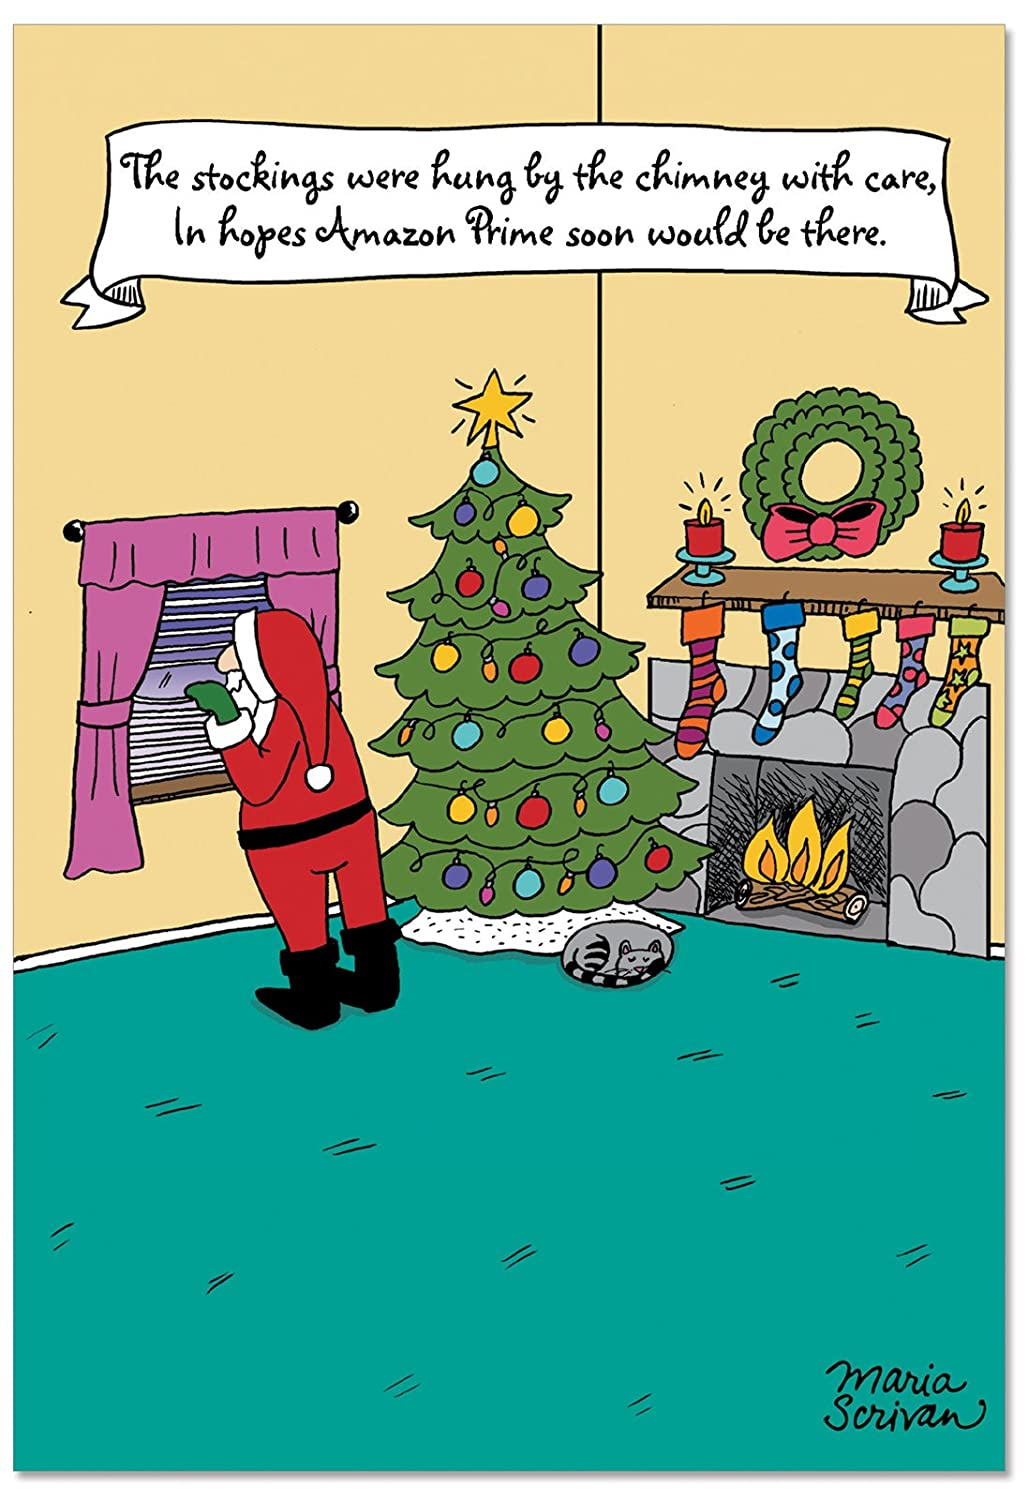 Silly Funny Boxed Christmas Cards | www.topsimages.com